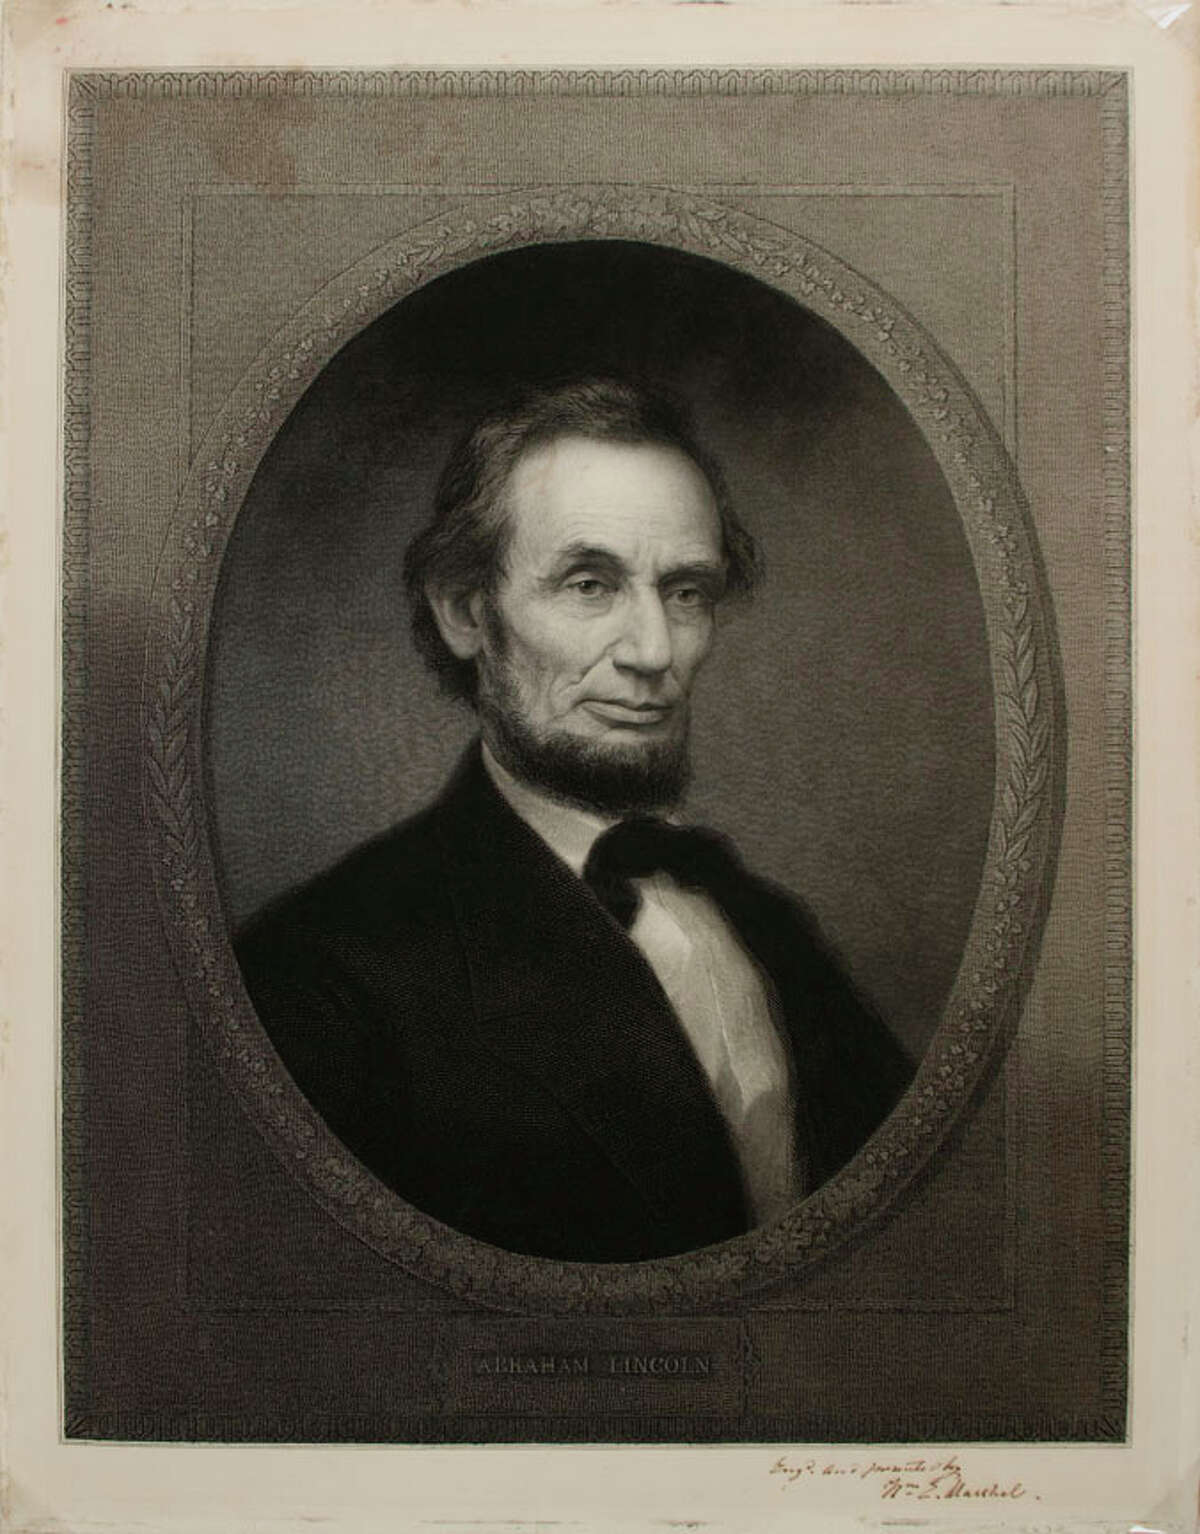 Abraham Lincoln (1809-1865) William Edgar Marshall 1865 Engraving, ht.23 1/2